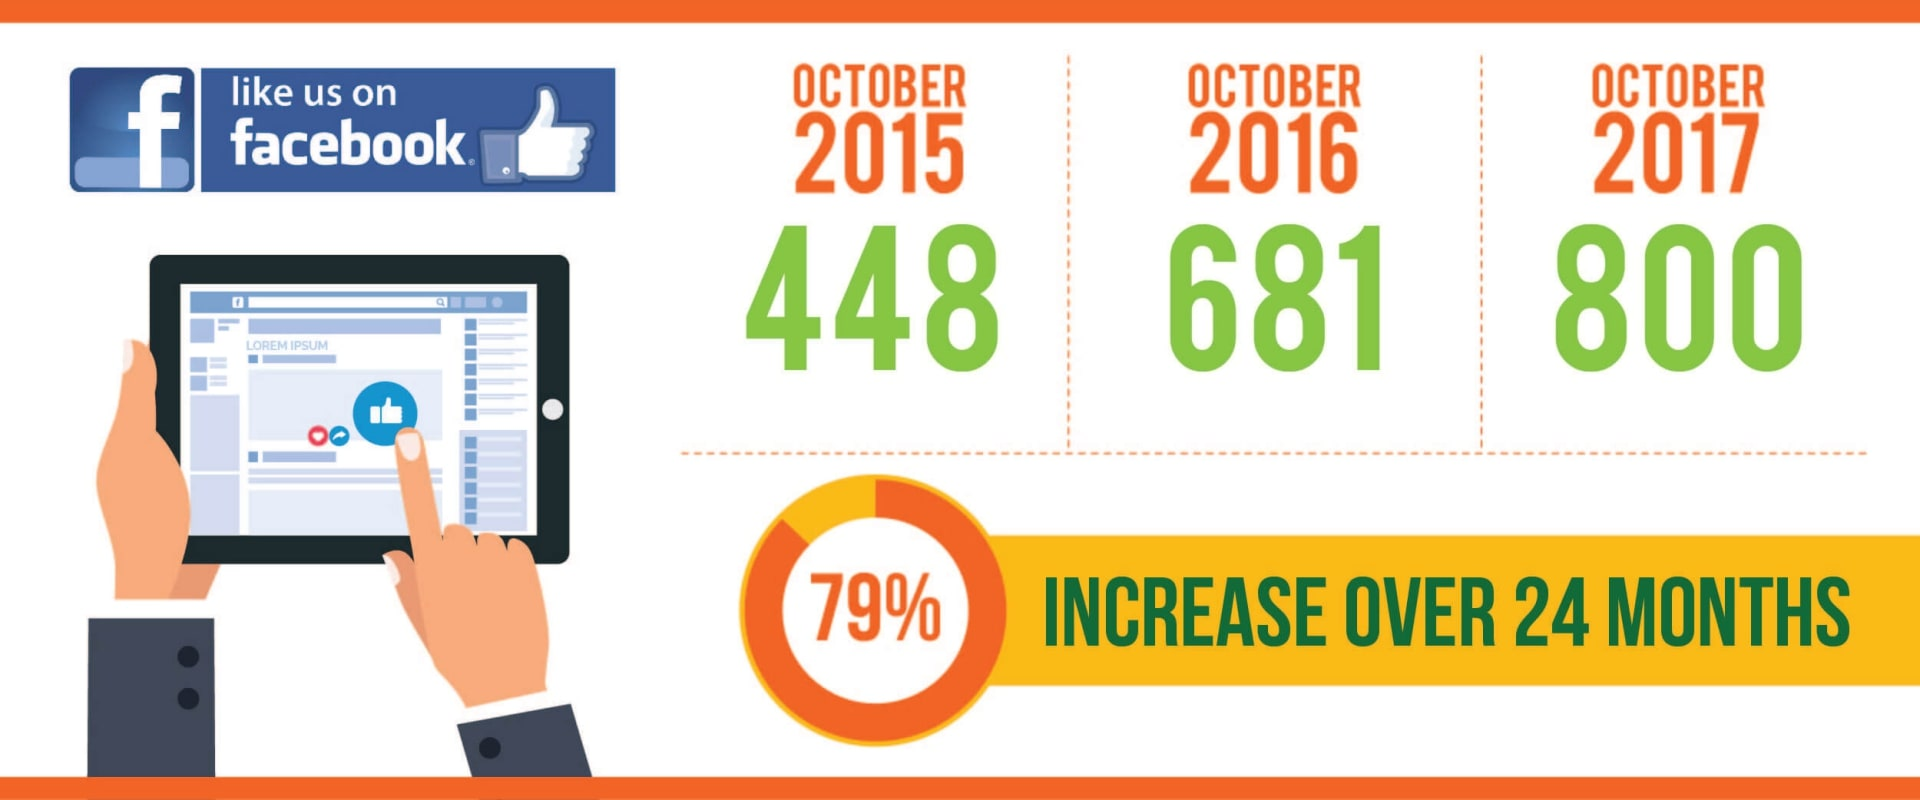 79 percent increase in Facebook likes for Community Food Bank of San Benito County